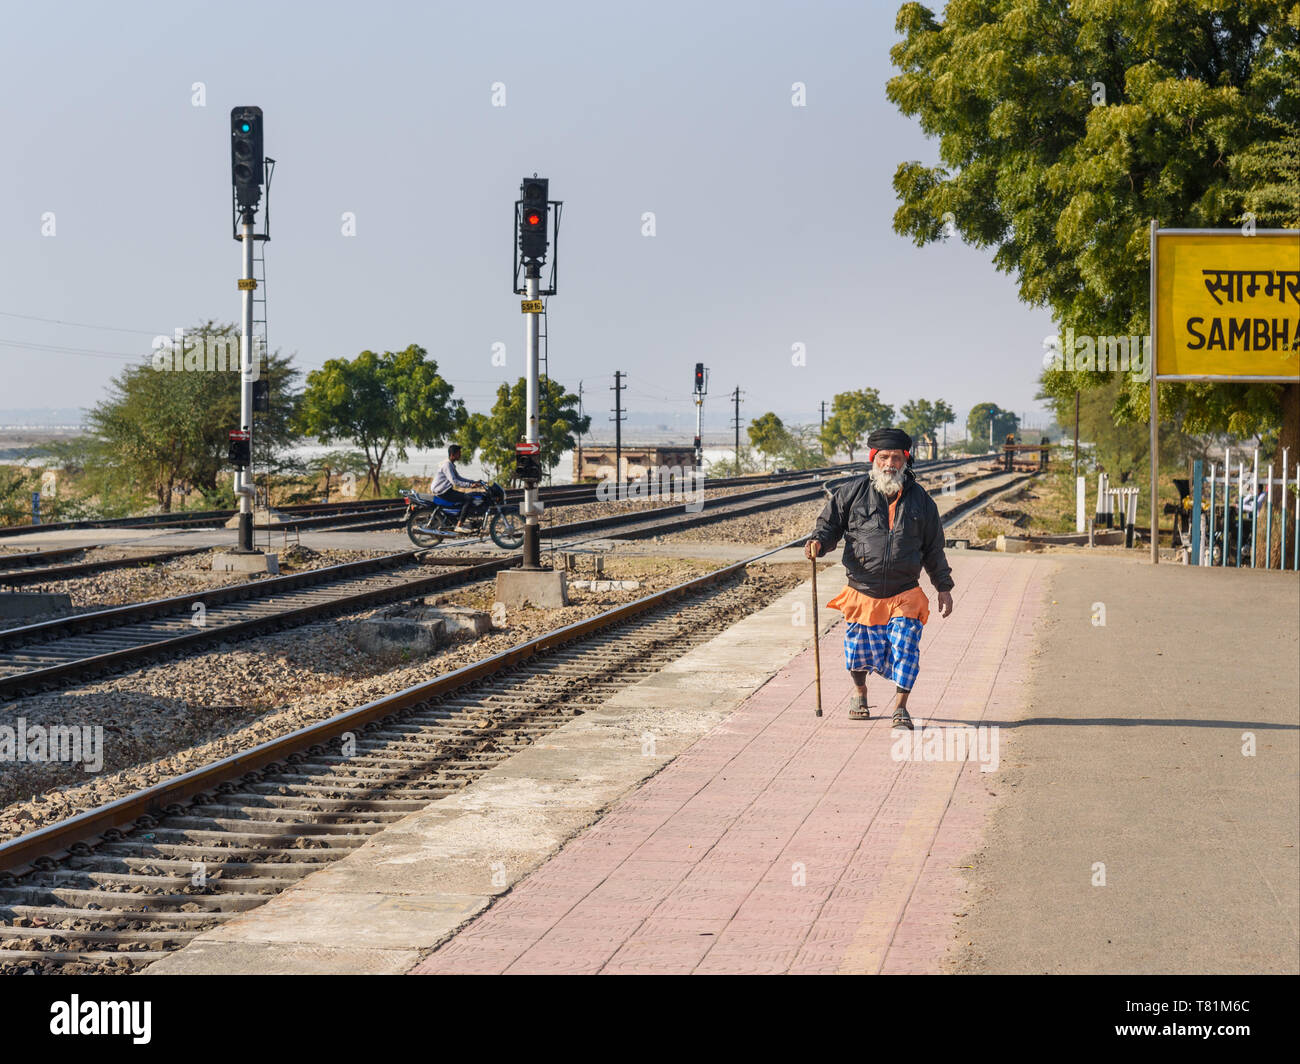 Sambhar, India - February 02, 2019: Elderly Indian man walks along the train platform at the station - Stock Image